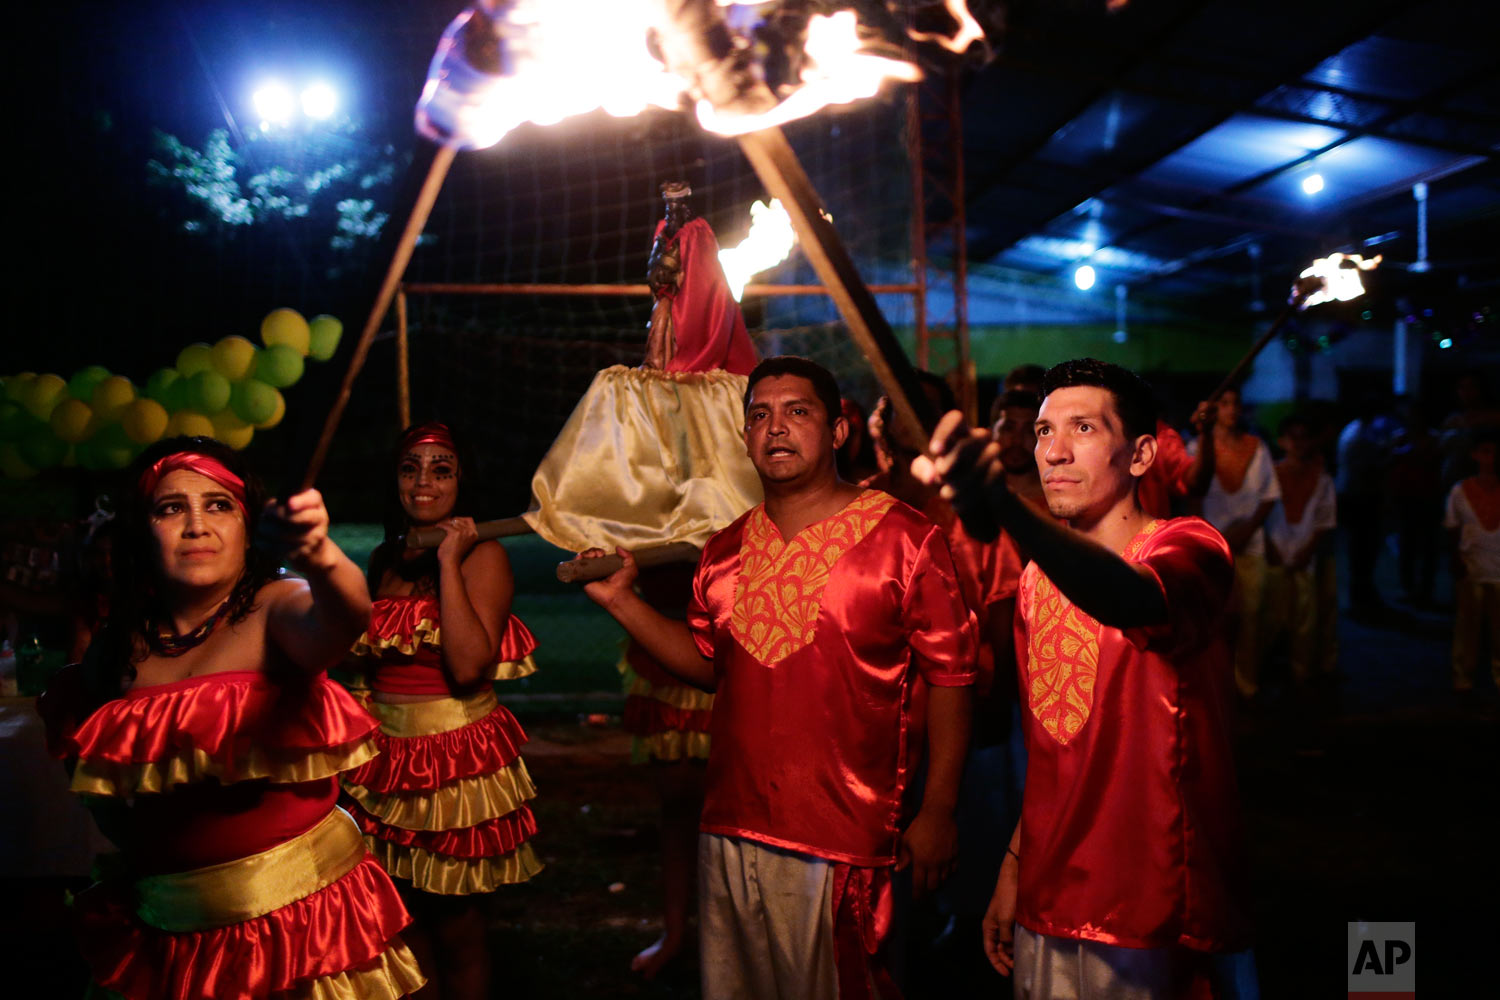 Adolfo Bogarin, president of the Afro-Paraguayan cultural group Kamba Cua, center, helps carry a statue of Saint Balthazar, one of the Three Kings, as they hold a torch-lit procession to mark Epiphany in Fernando de la Mora, Paraguay, Jan. 5, 2019. (AP Photo/Jorge Saenz)